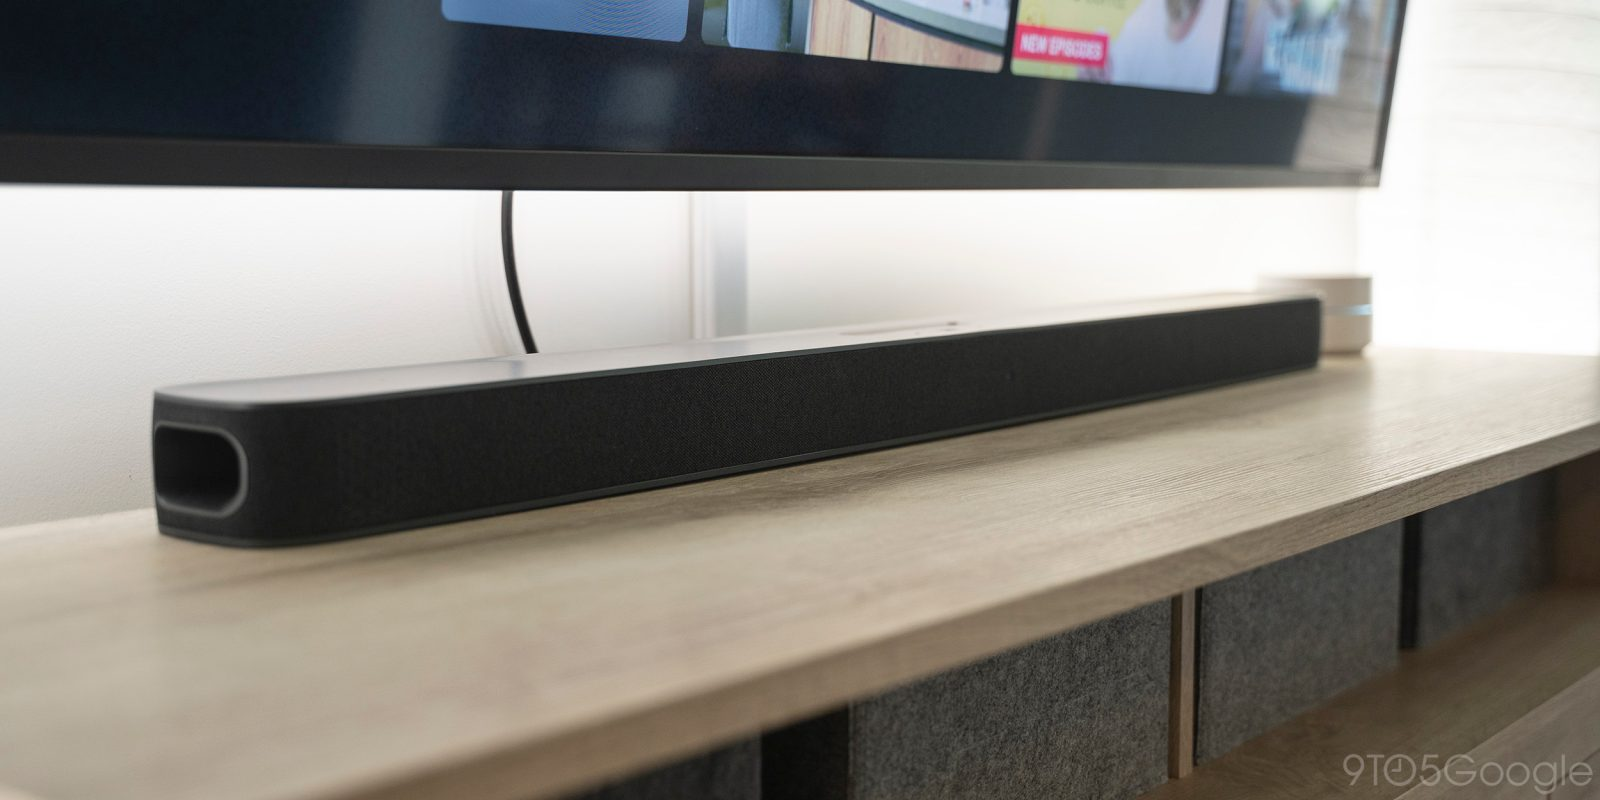 JBL Link Bar Review: A solid soundbar w/ Android TV and a frustrating Assistant